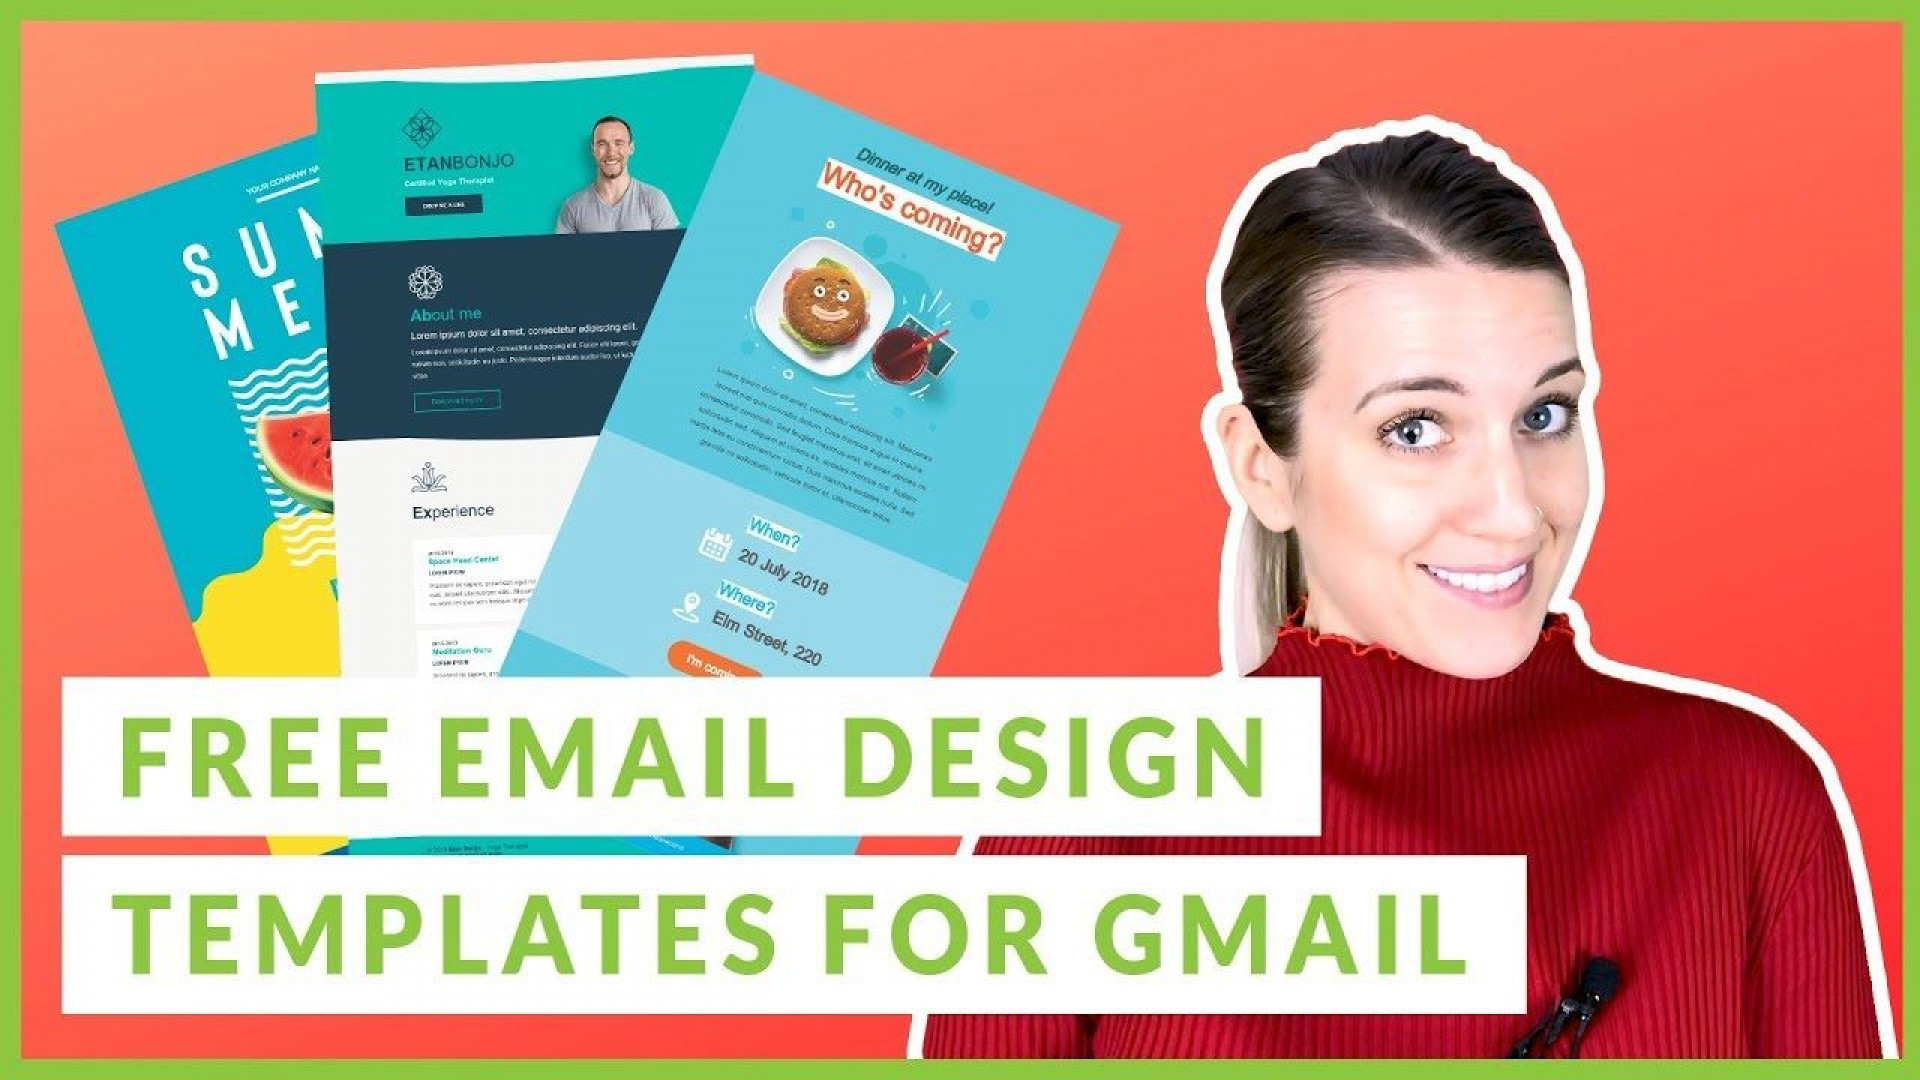 004 Excellent Free Email Template For Gmail Highest Quality  Signature1920